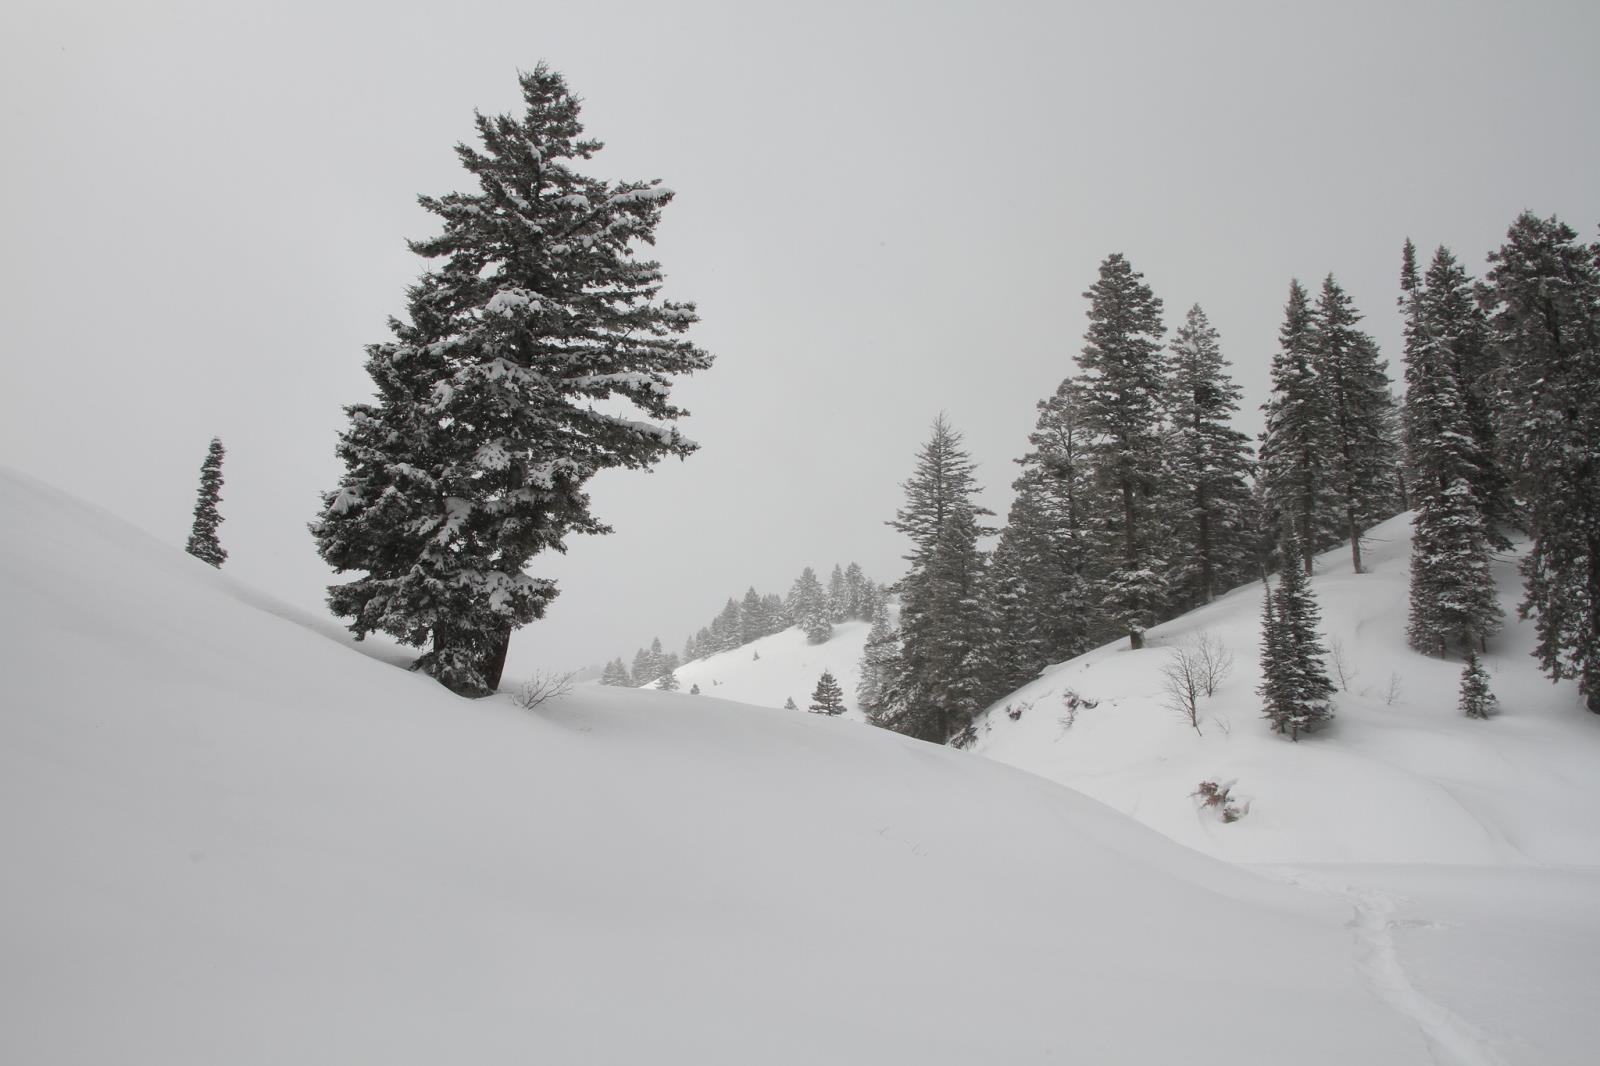 The Old Farmer's Almanac predicts above-normal snowfall throughout Idaho, Montana and Wyoming during the upcoming winter.